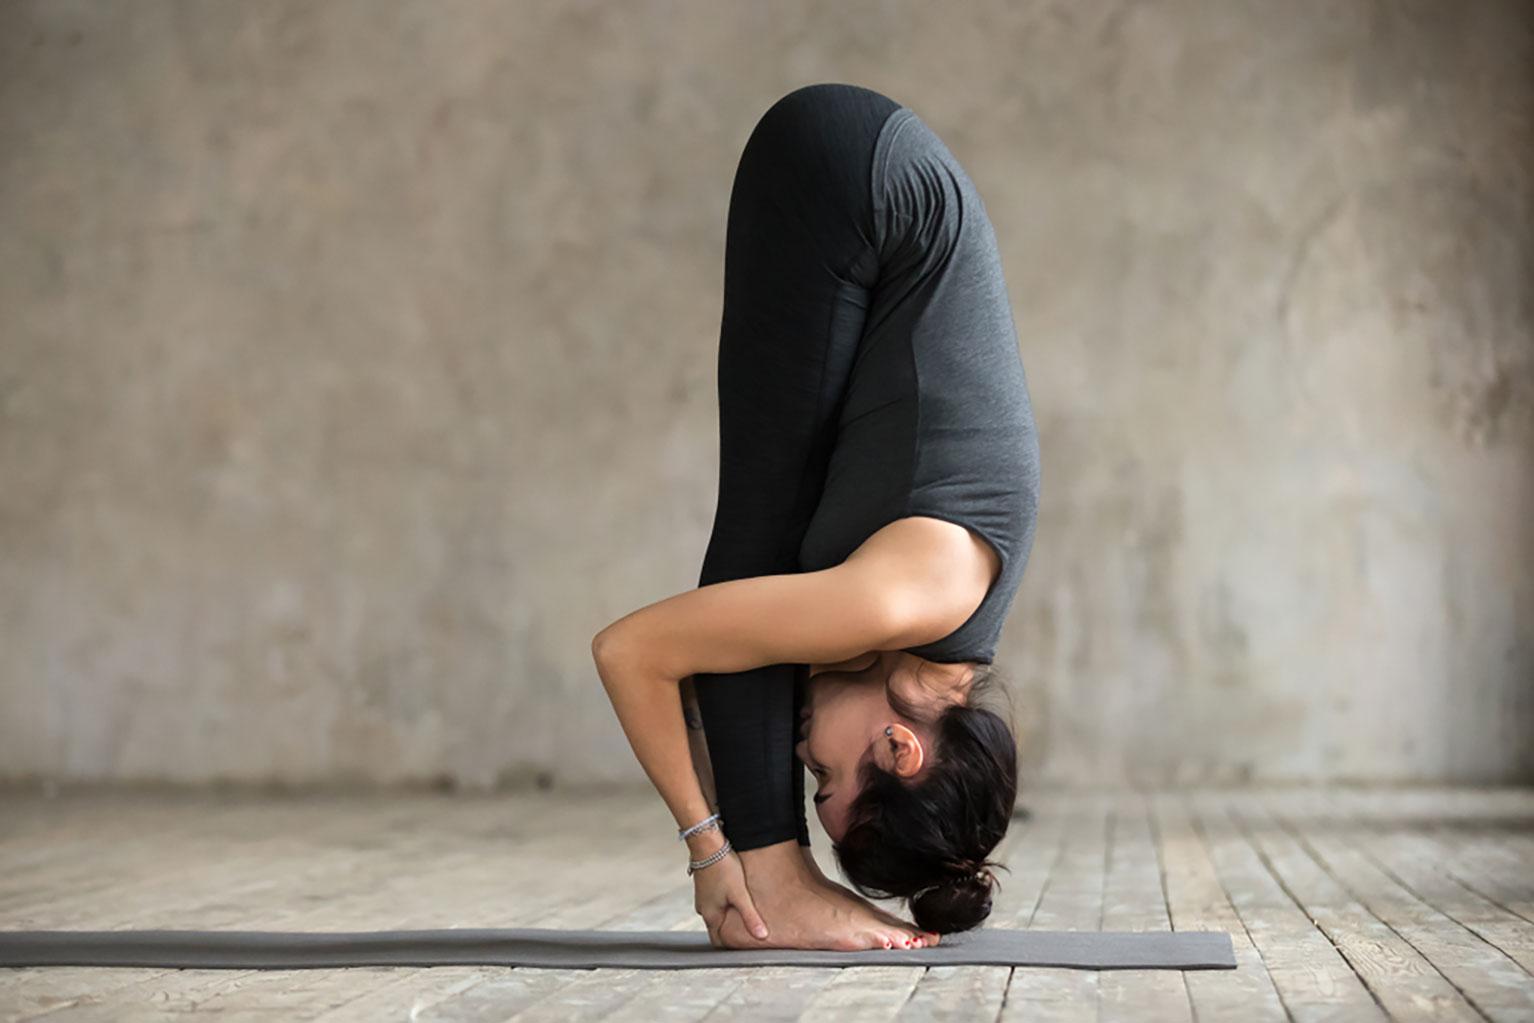 Young woman practicing the forward fold yoga pose